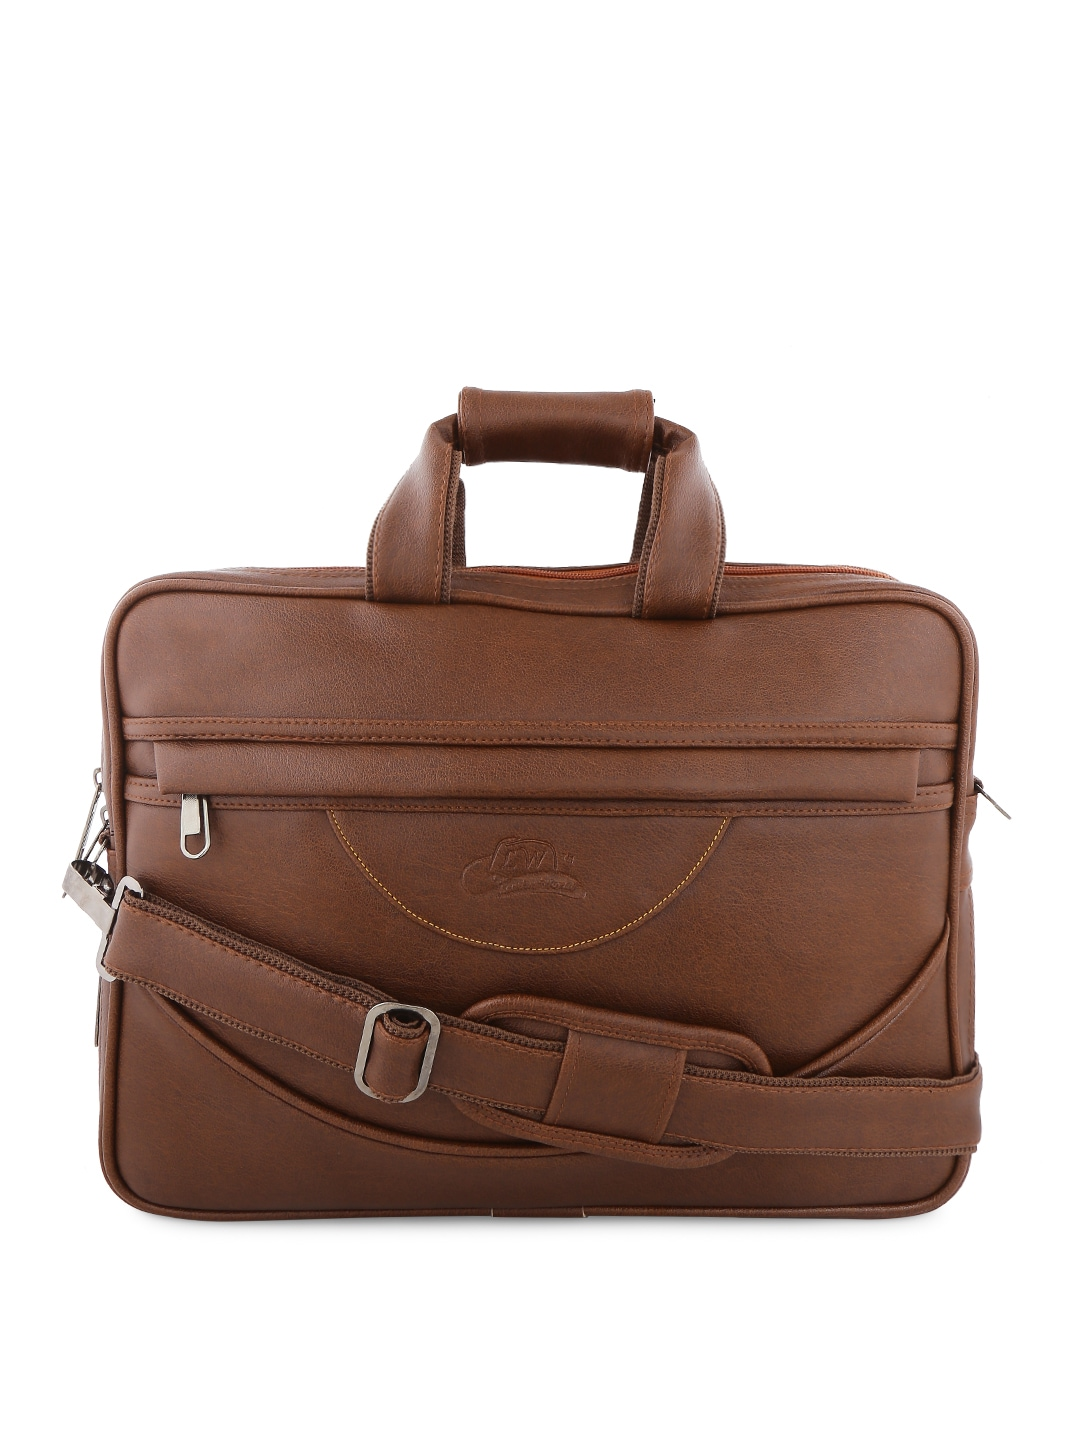 76e1c8448b8e Laptop Bag - Buy Laptop Bags   Backpack Online in India